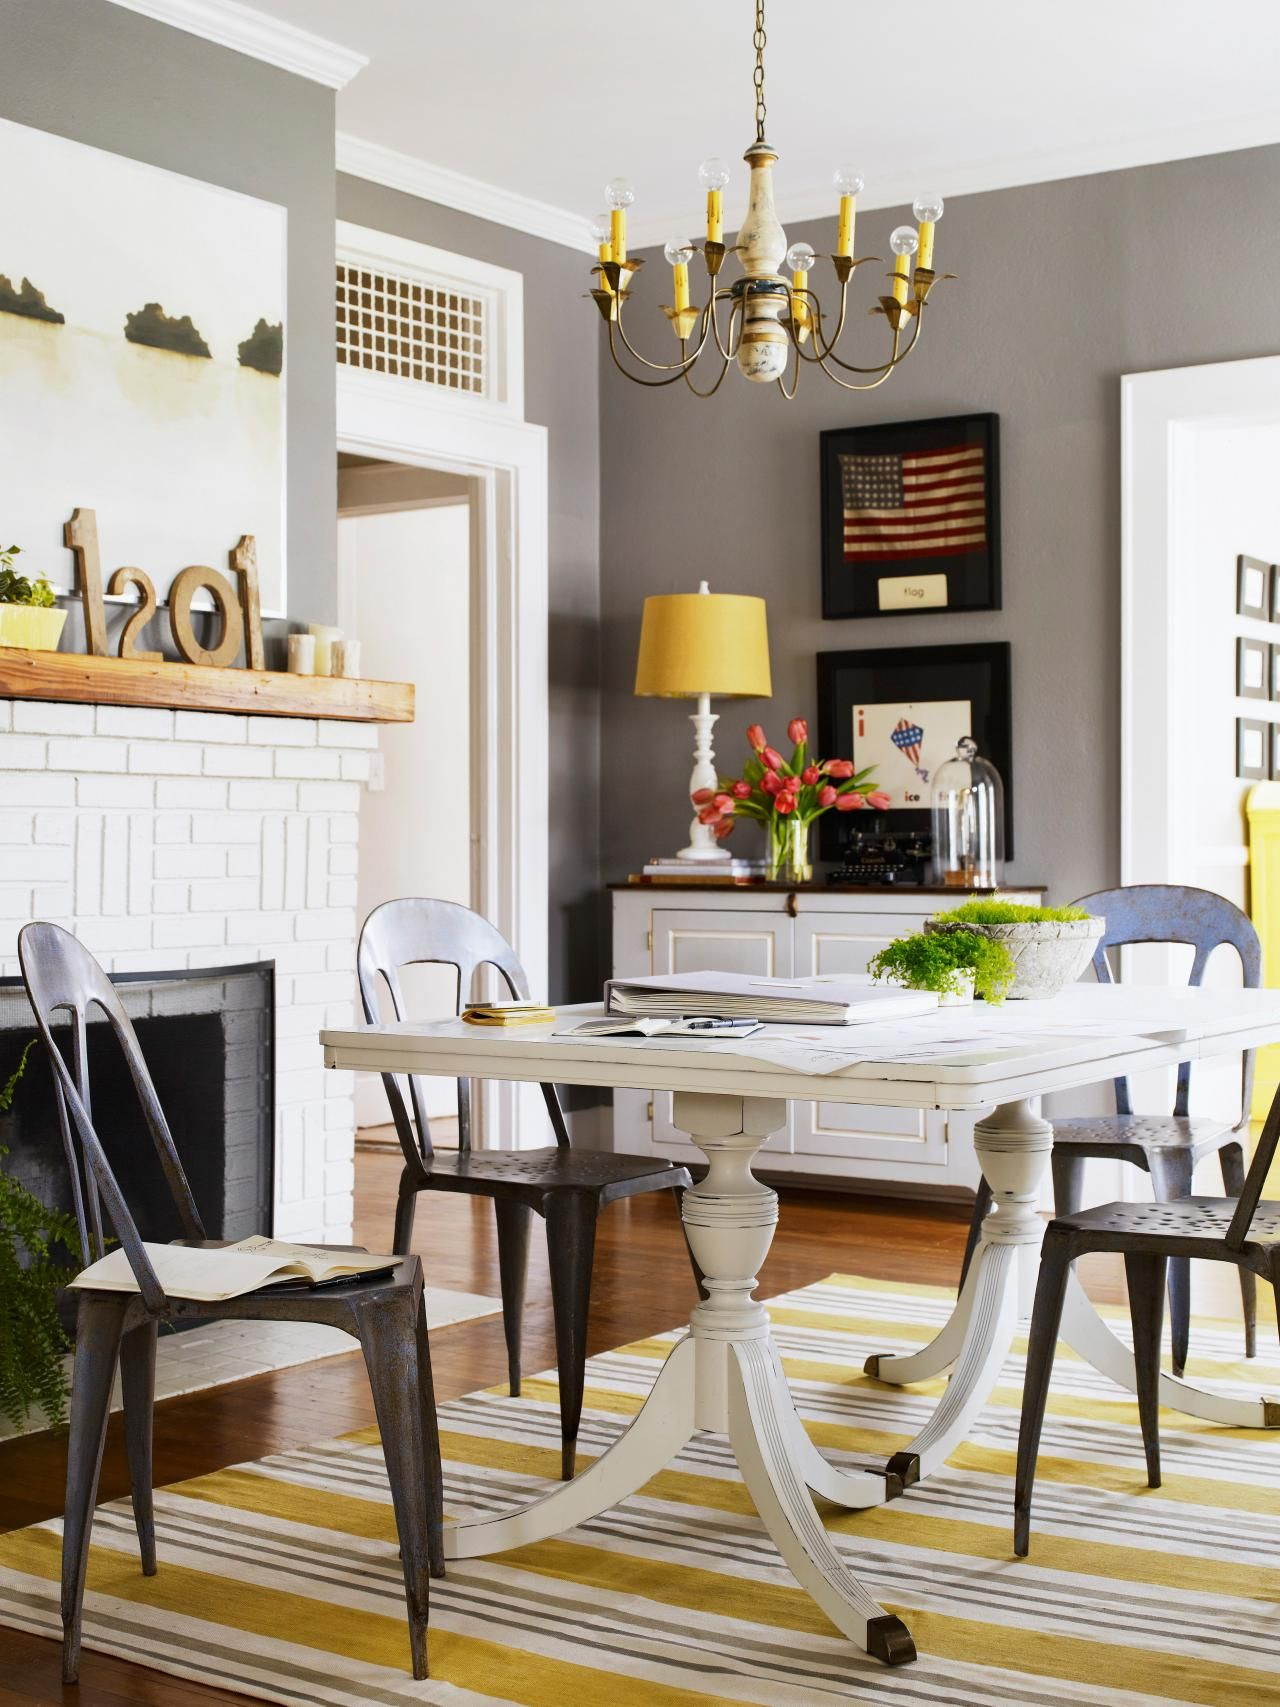 Fixer upper kitchen chairs - Operation Fixer Upper Interior Design Styles And Color Schemes For Home Decorating Hgtv